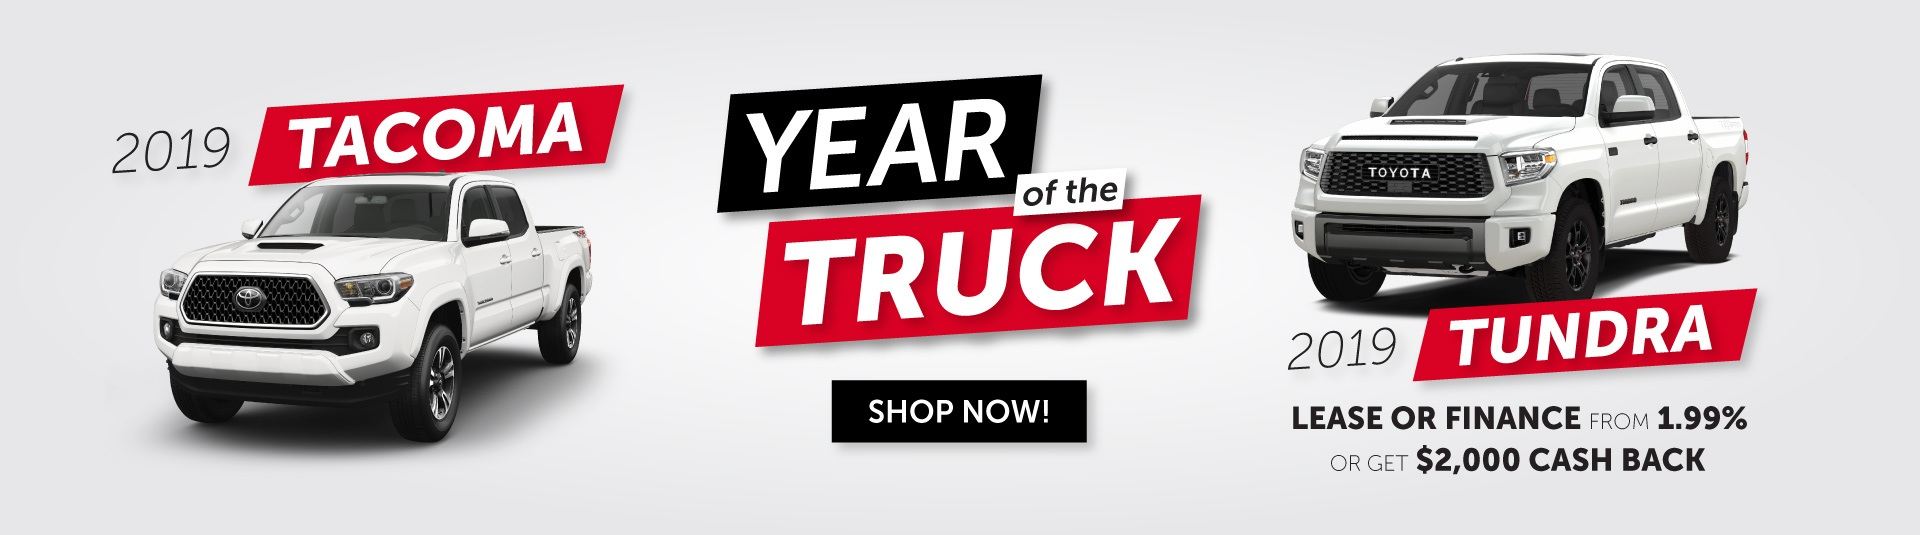 Year of the Truck -Tacoma and Tundra